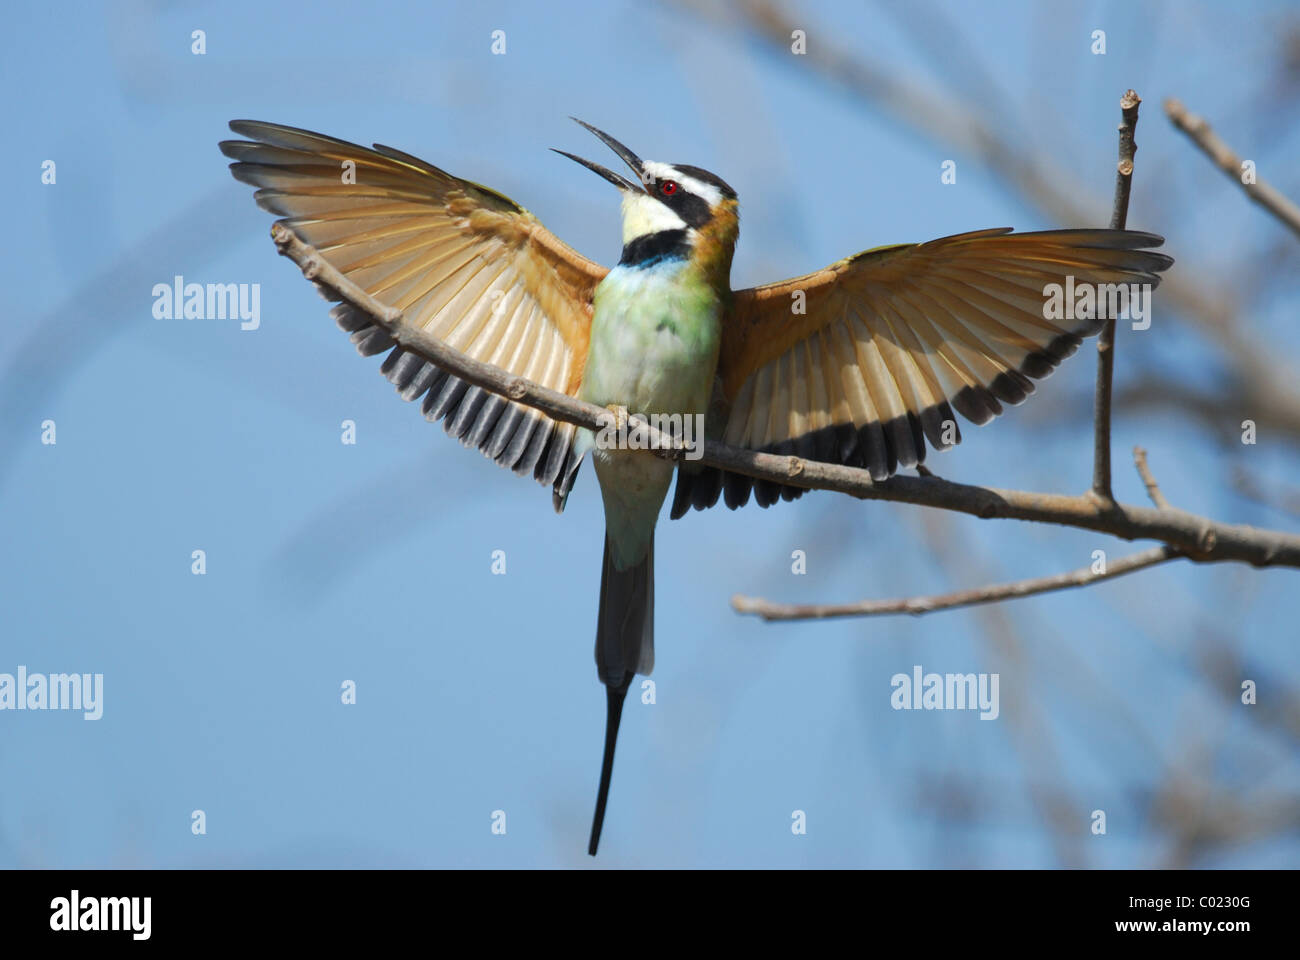 White-throated Bee-eater (Merops albicollis) displaying in The Gambia. - Stock Image